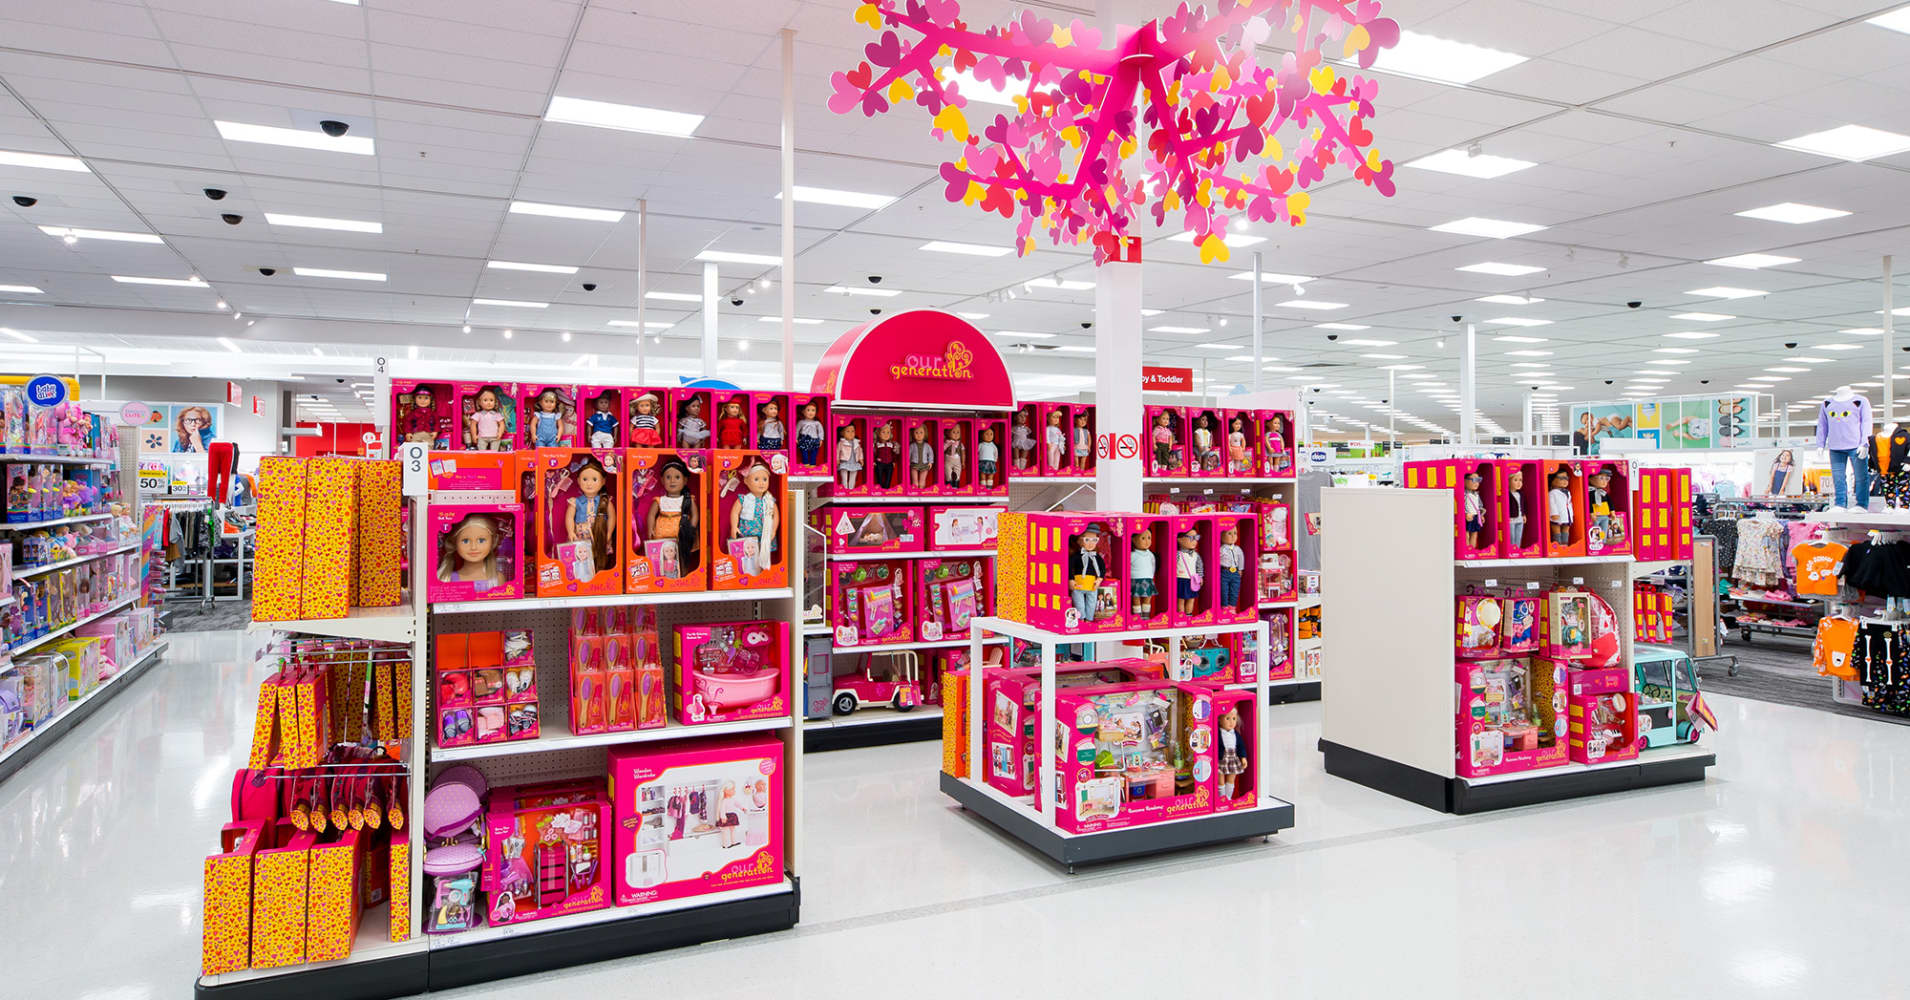 A tale of two toymakers: Mattel soars, Hasbro sinks, but there's more to the story